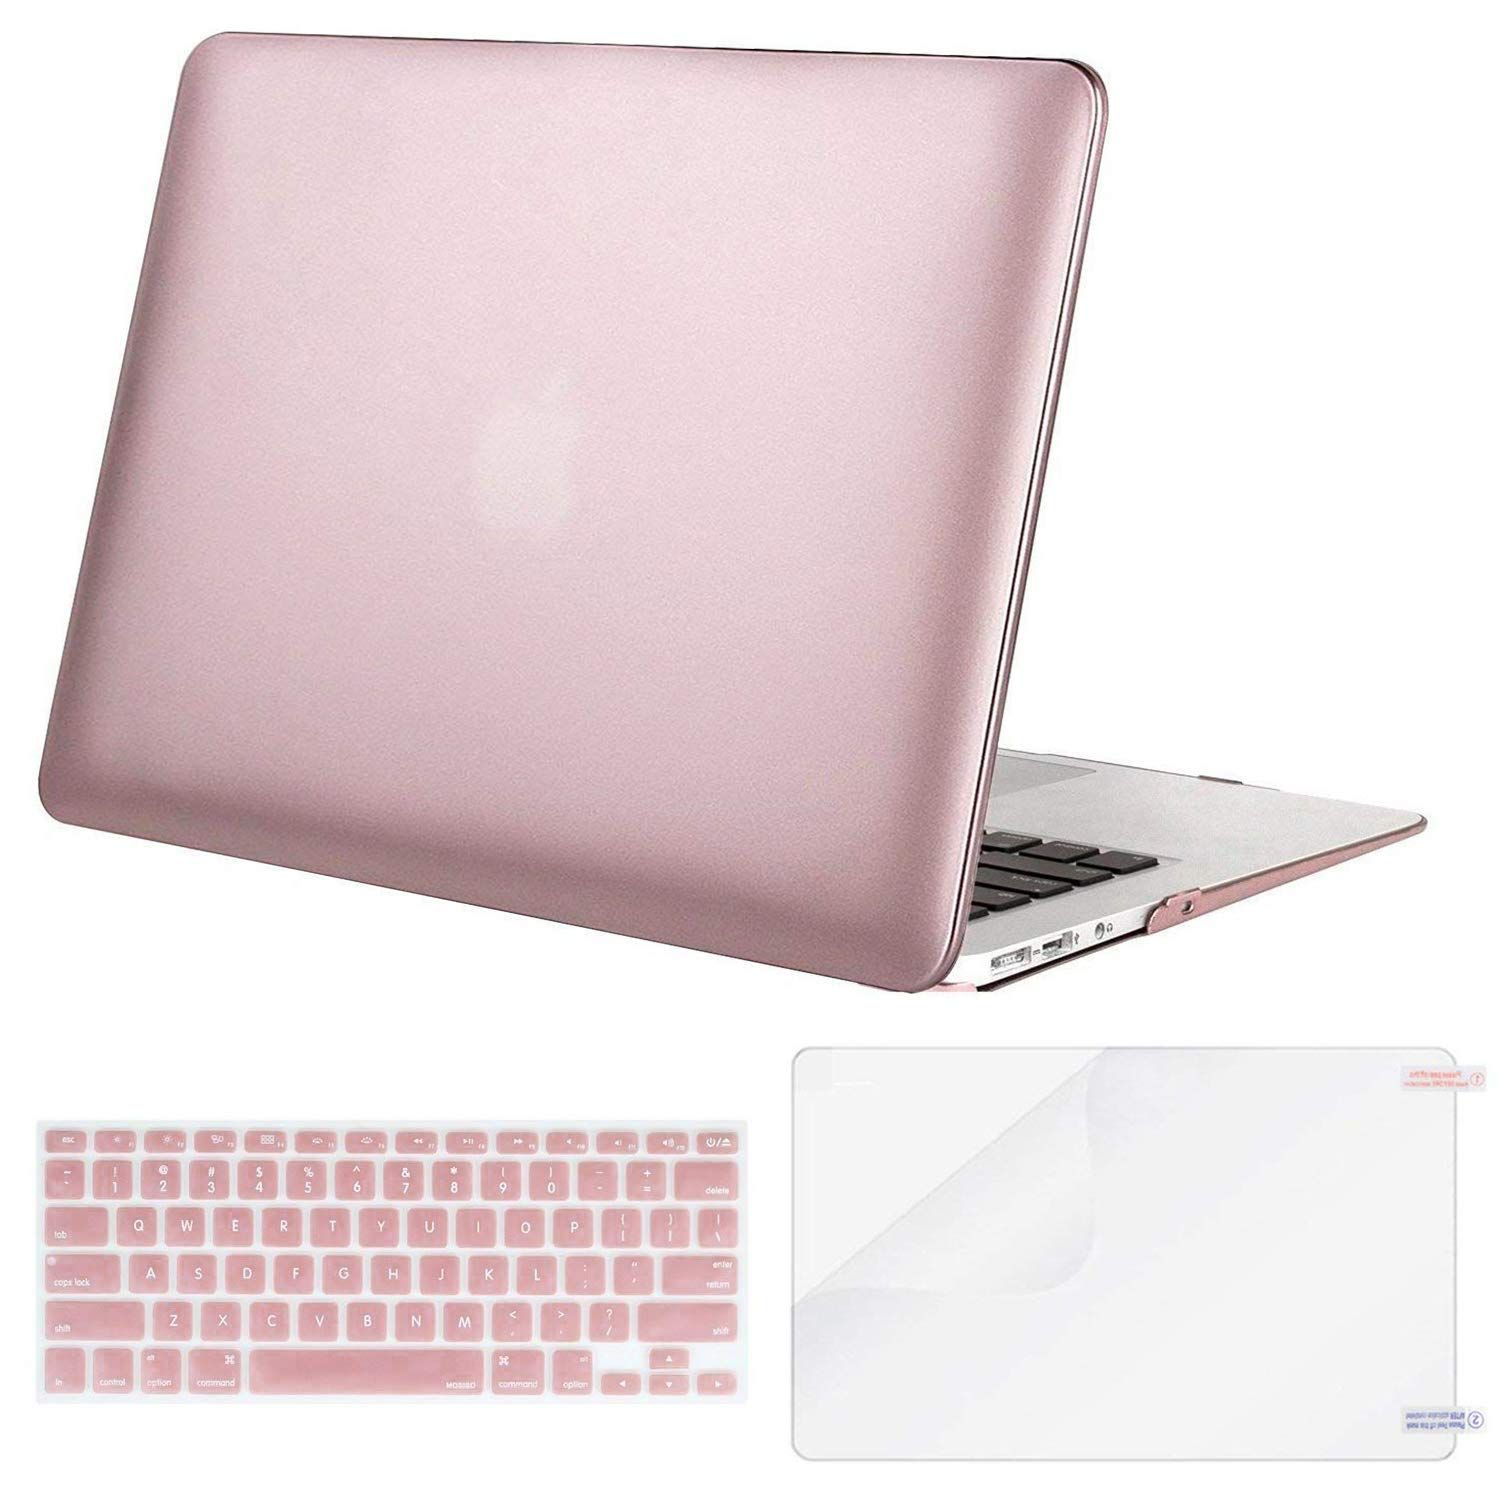 new product 3bb18 84f55 Amazon.com: MOSISO Plastic Hard Case & Keyboard Cover & Screen ...